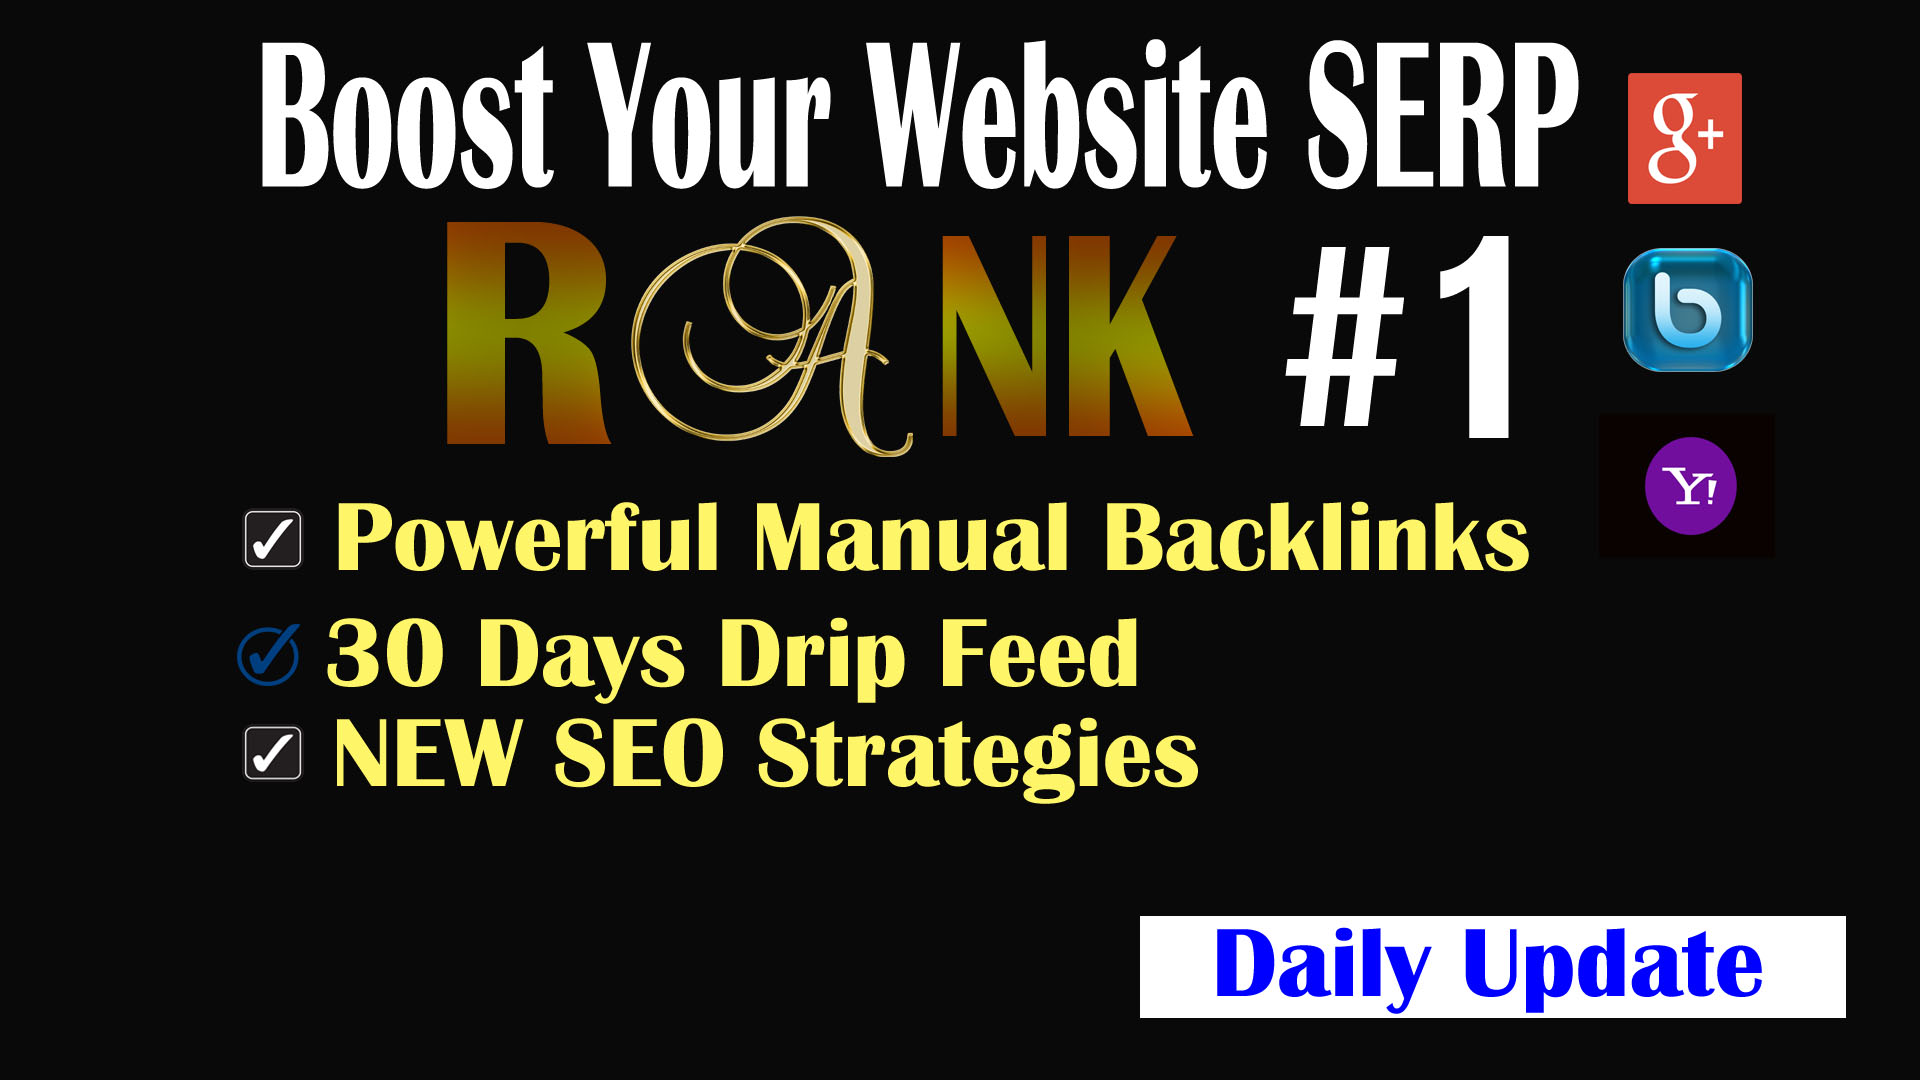 Check New SEO Top Ranking to Skyrocket Website FAST with BONUS - Updated Manual Authority Backlinks